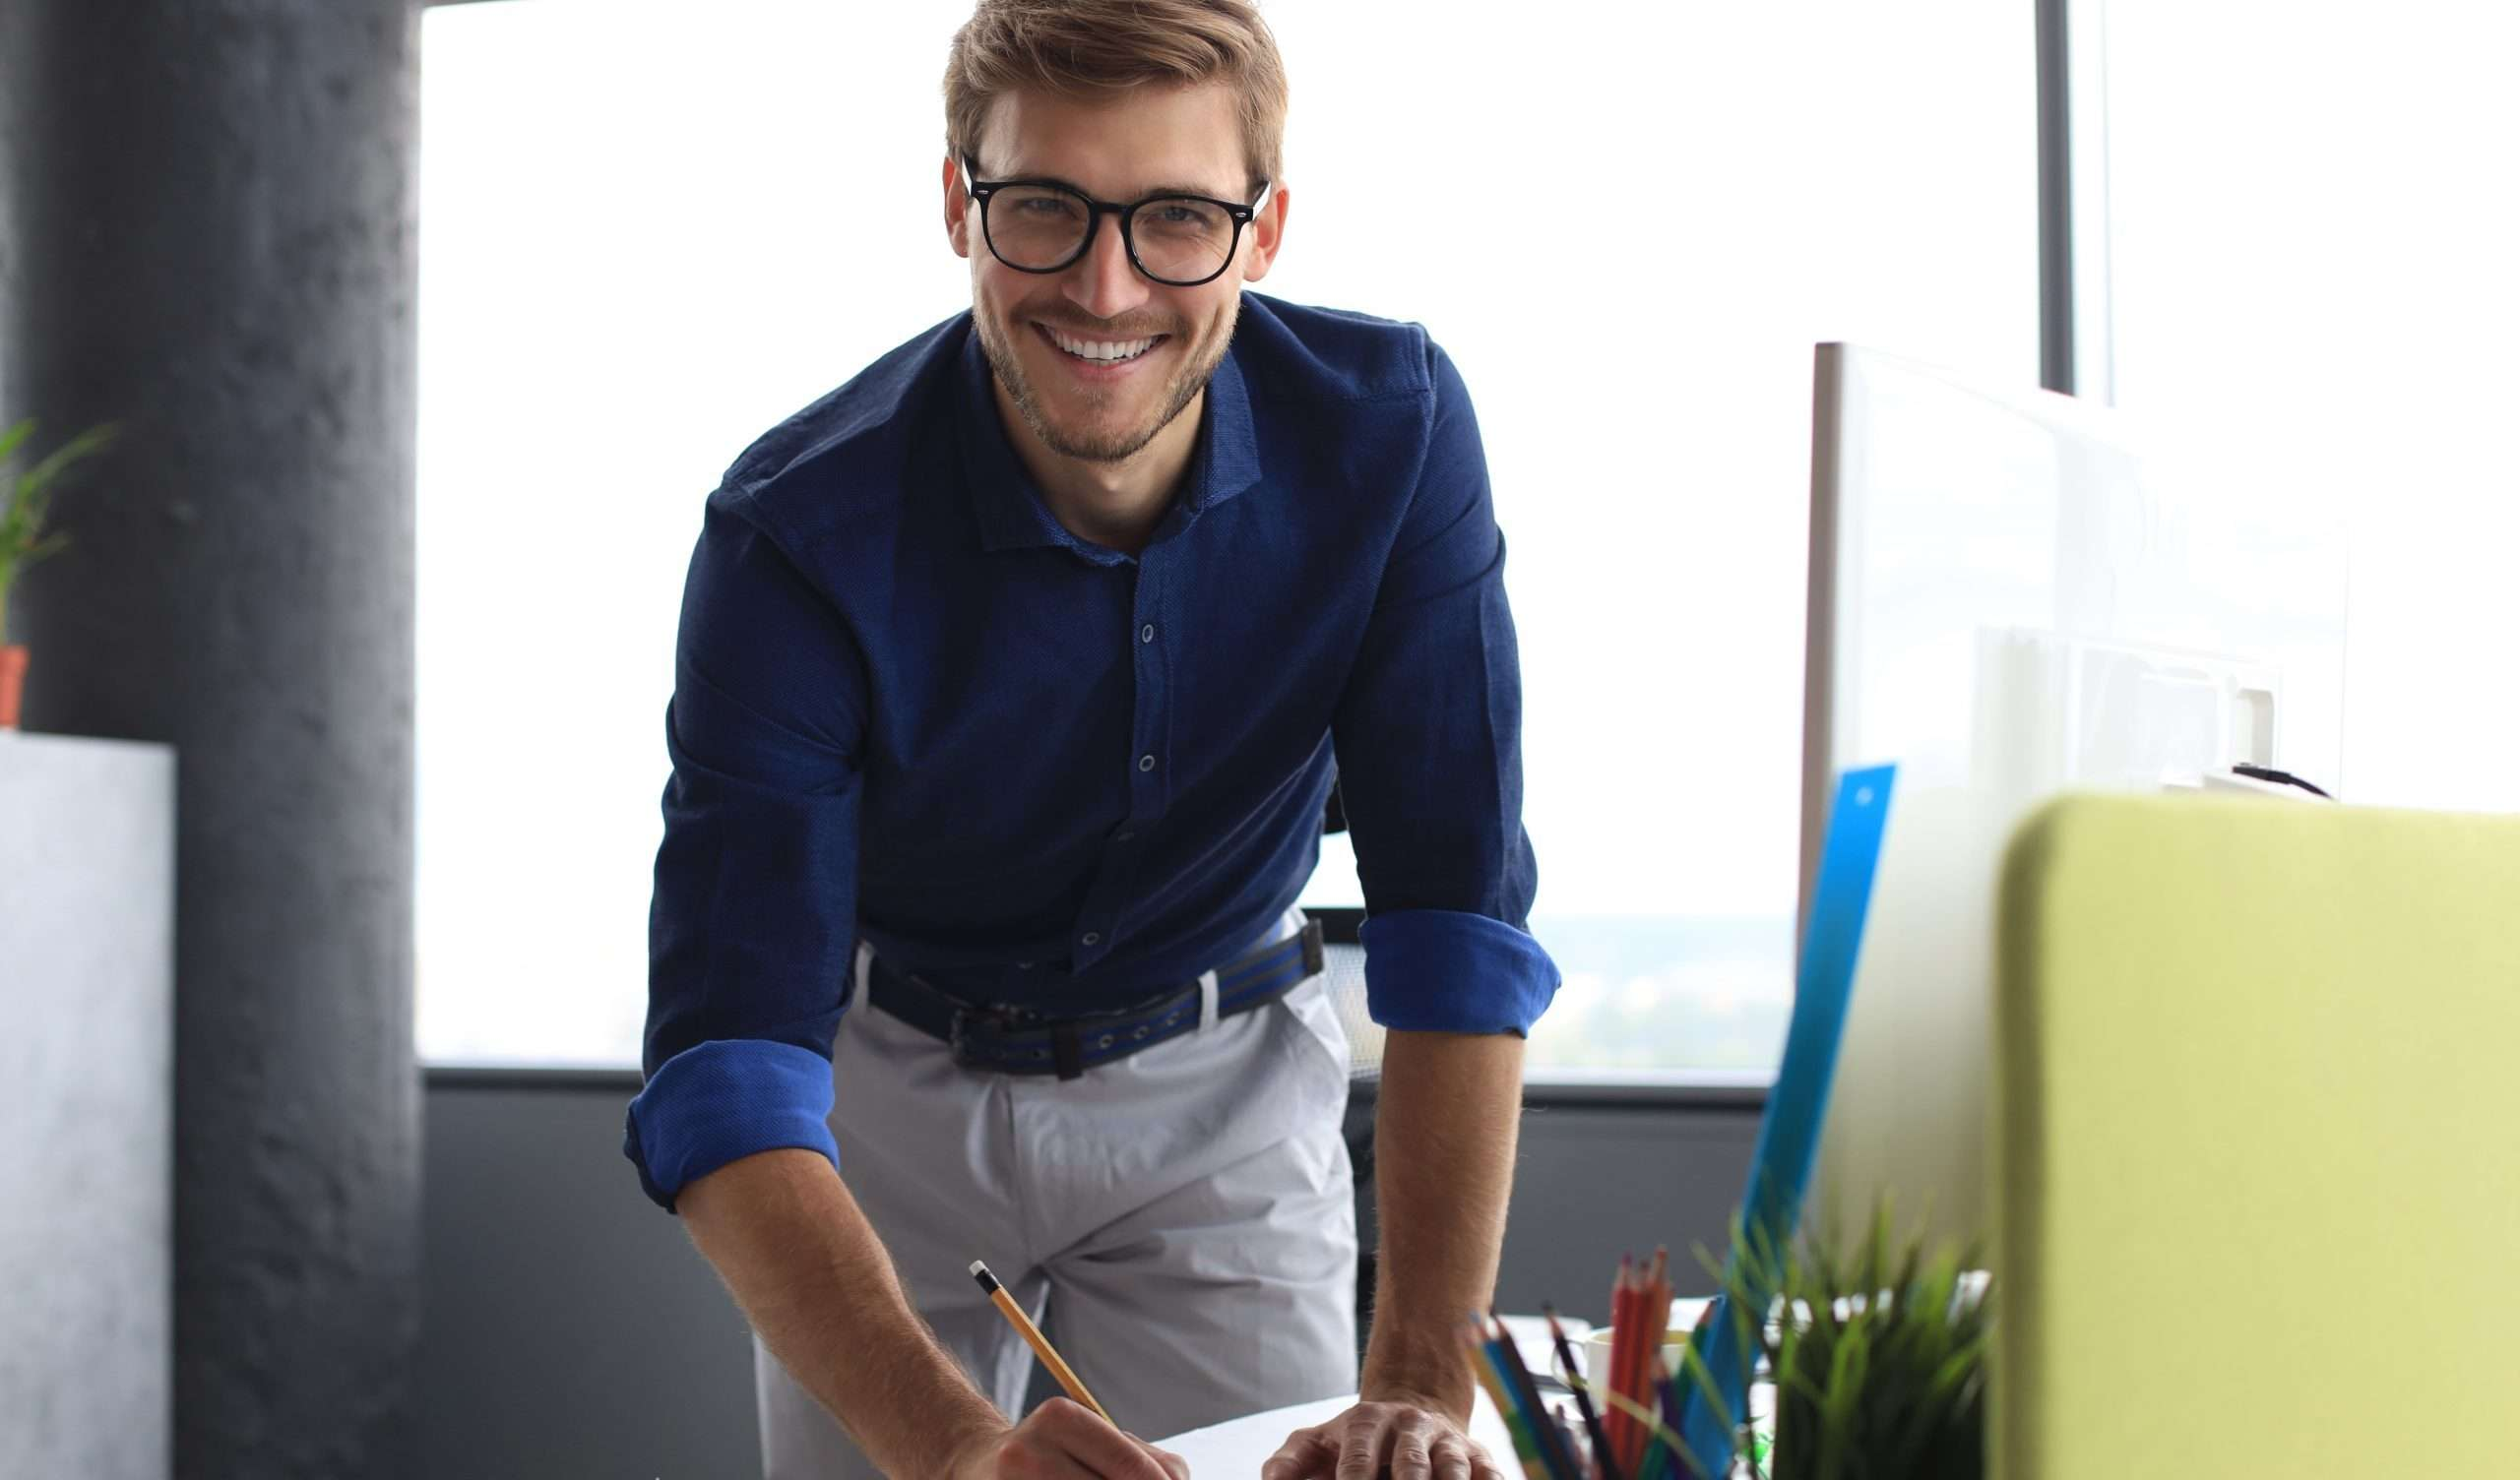 A professional in an office uses business ratios to gauge his success.